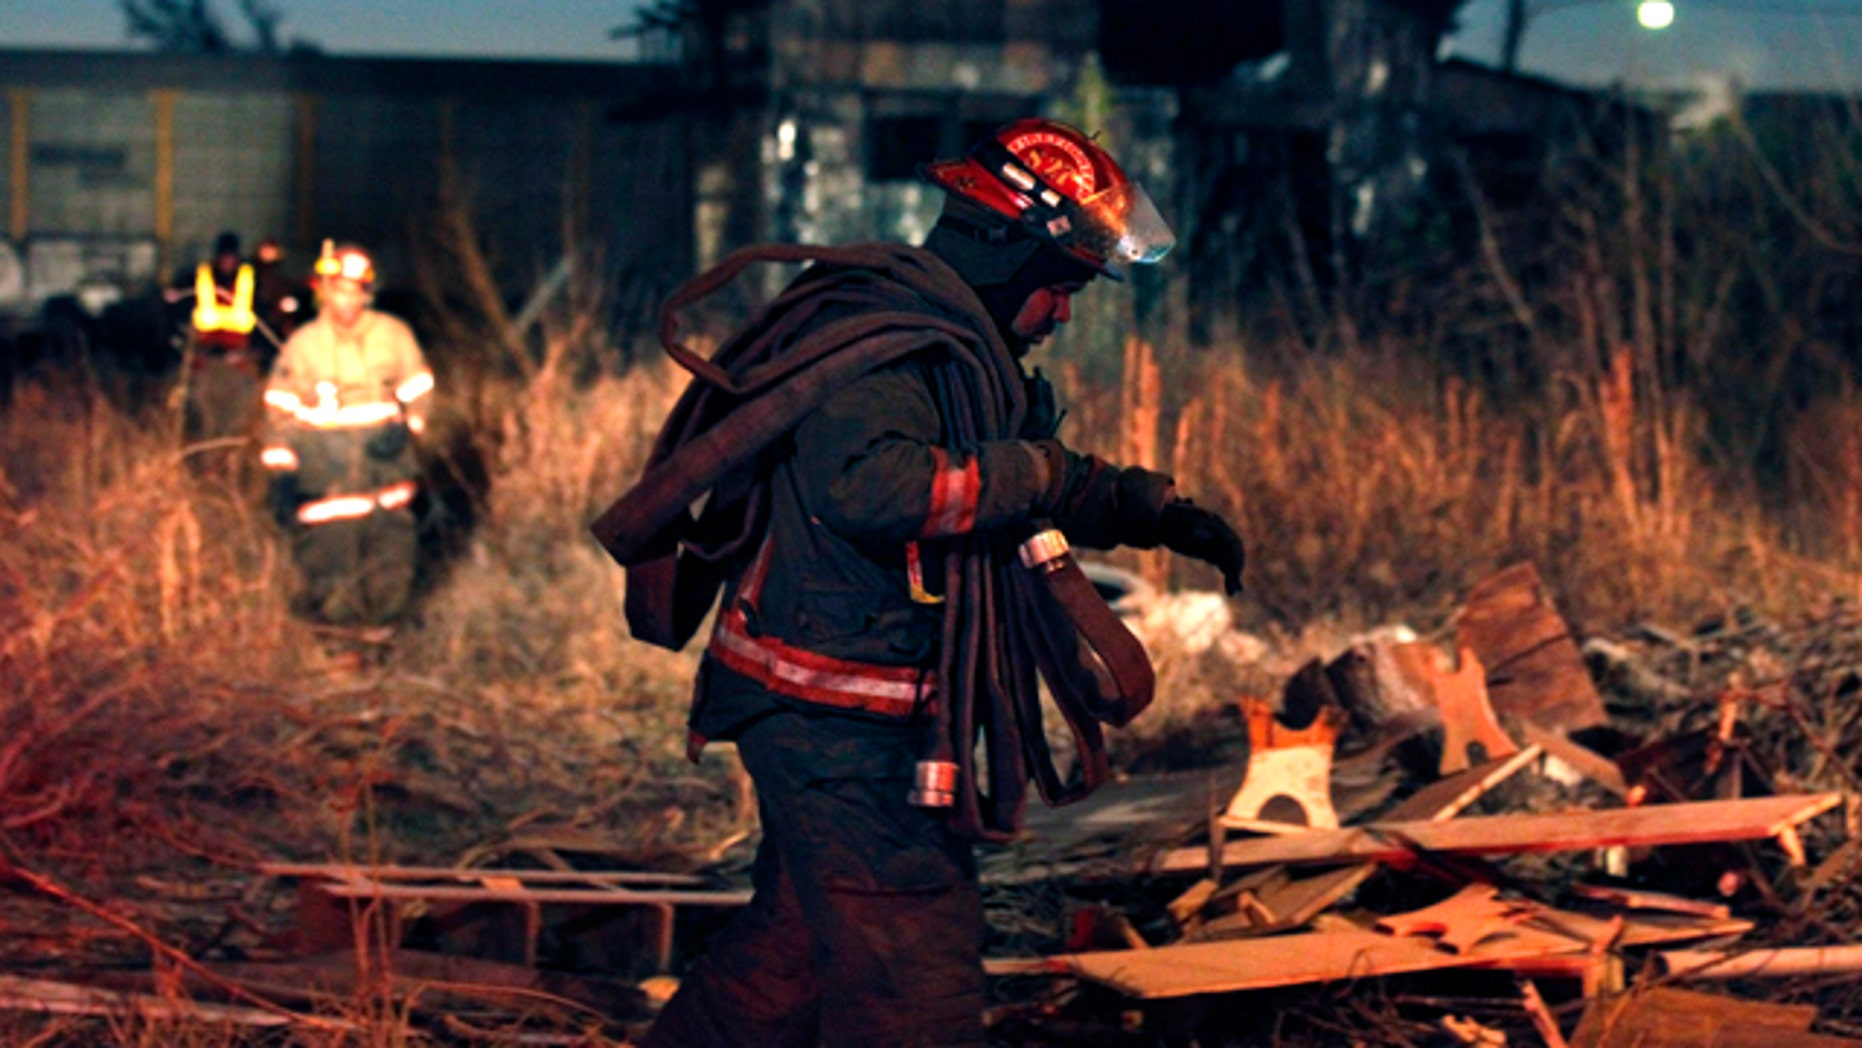 Dec. 28: Firefighters walk through debris after battling a fire in an abandoned warehouse, seen in background, in the Upper Ninth Ward of New Orleans.